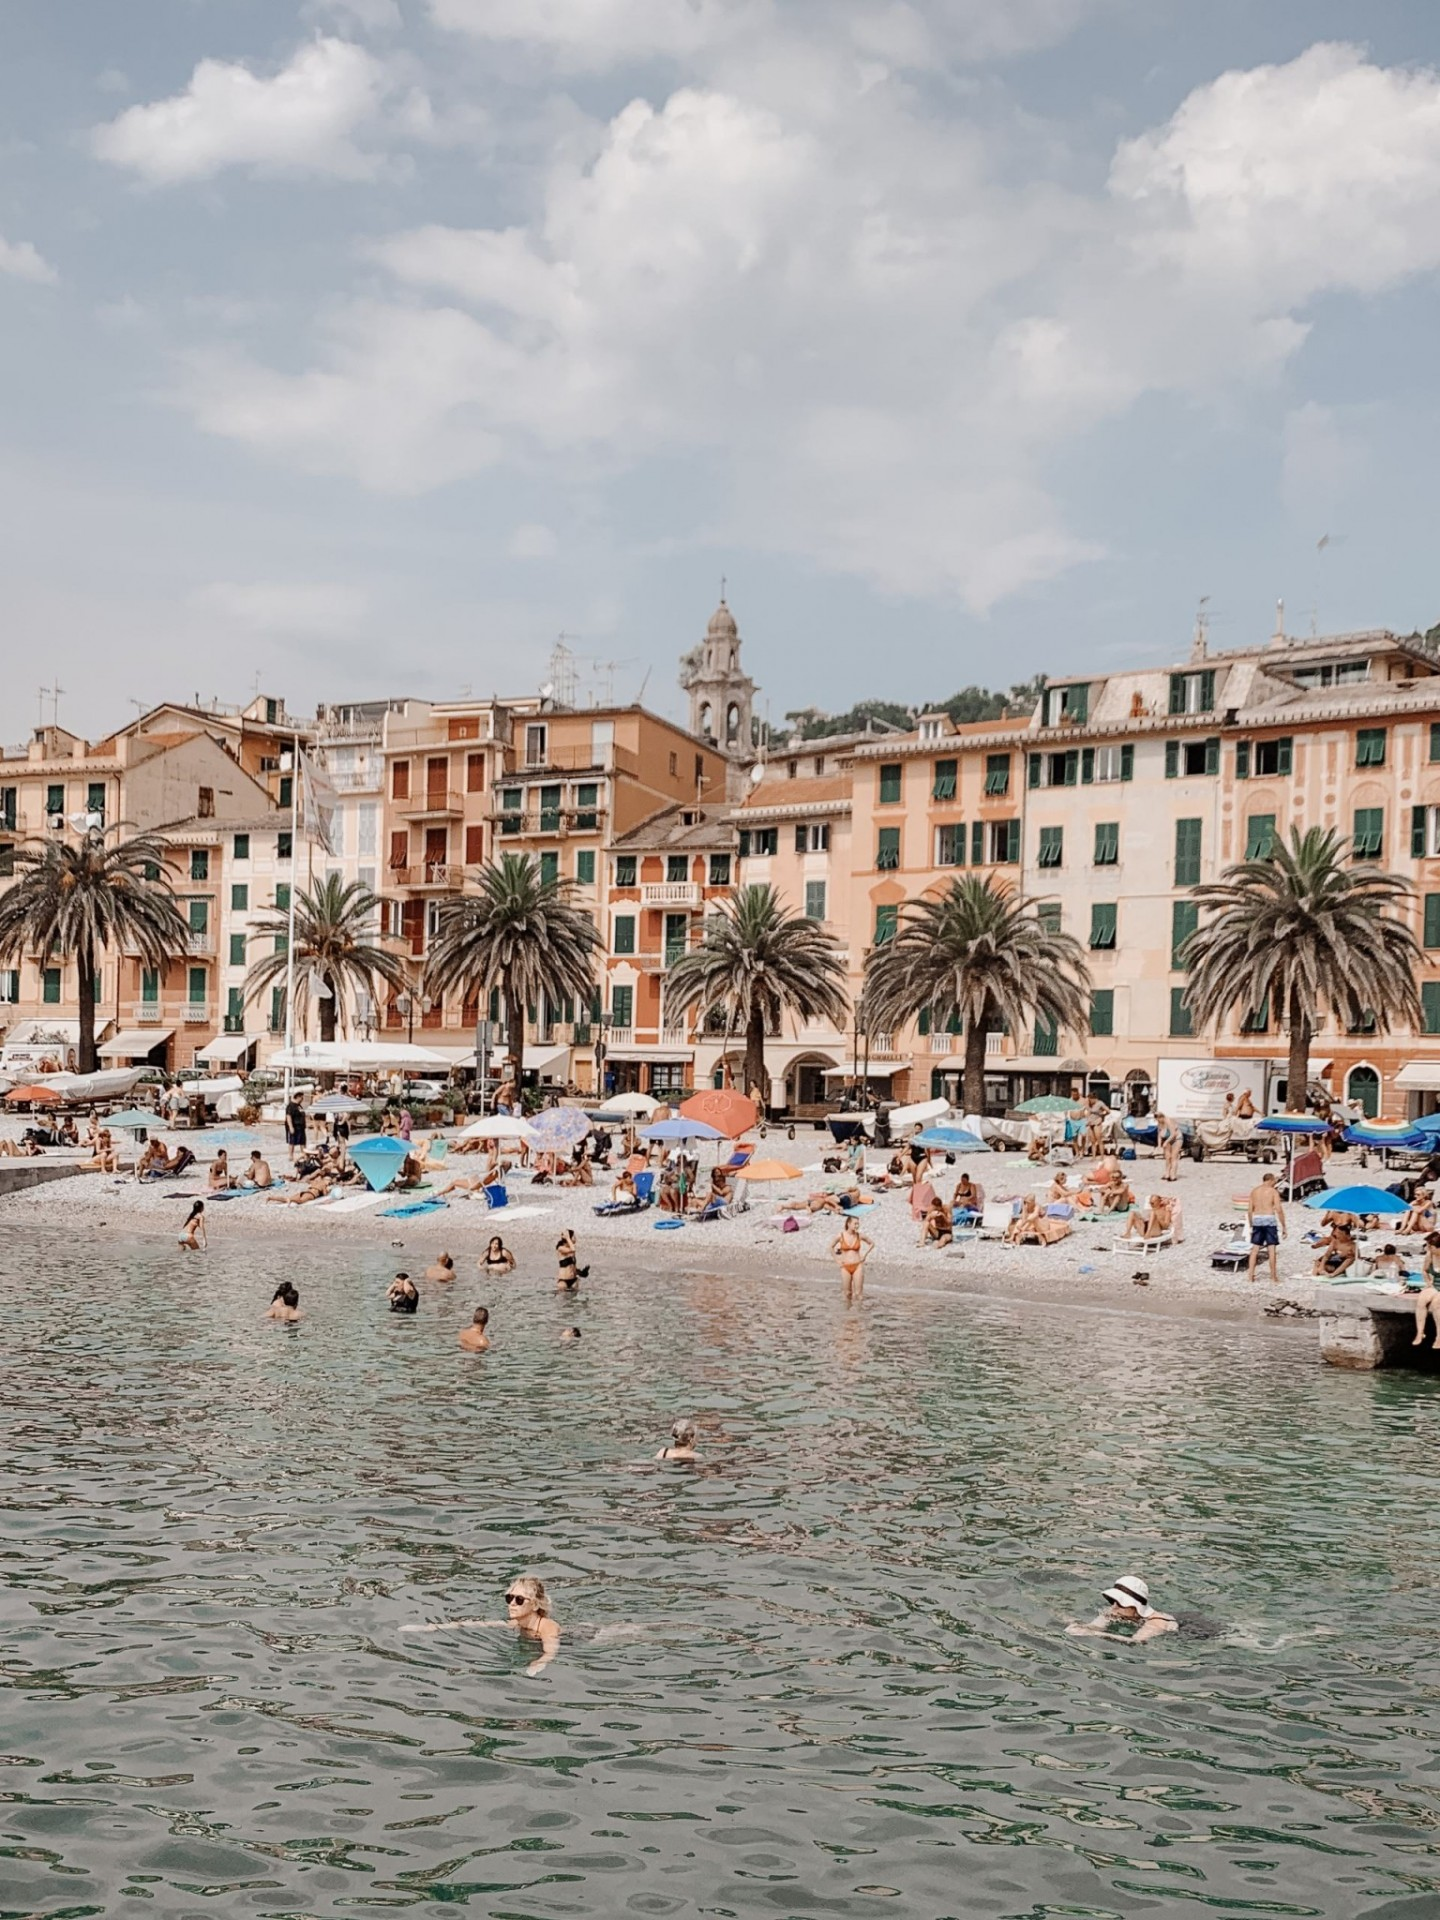 Lifestyle blogger Mollie Moore shares a Portofino Travel Guide | Travel Guide: Best Things to do in Portofino Italy by popular international travel blogger, Mollie Moore: image of people at the beach in Portofino Italy.